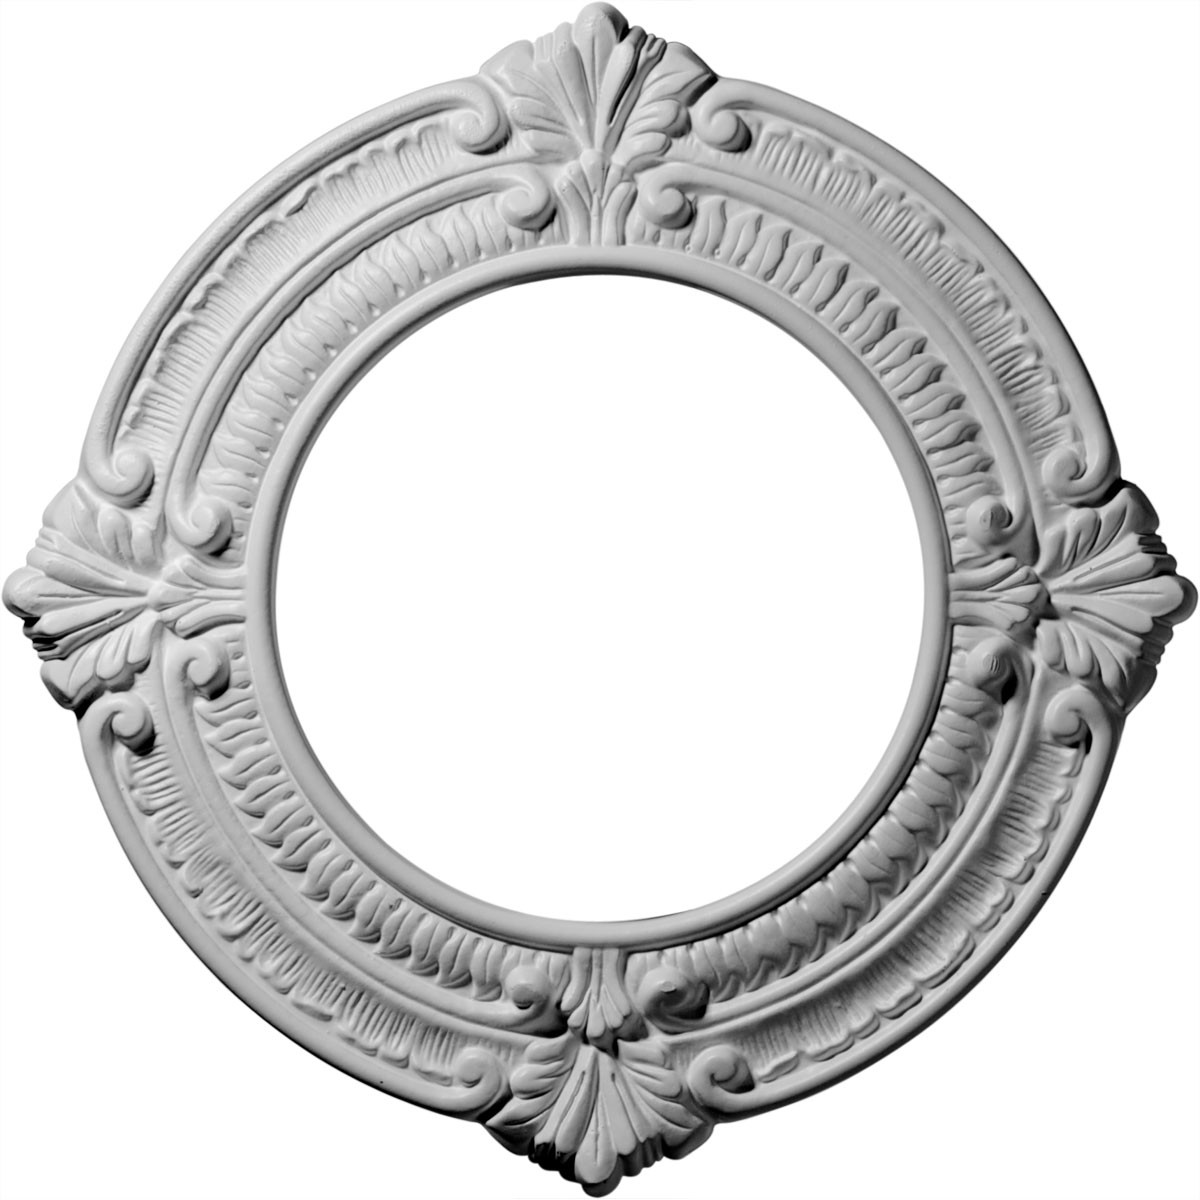 """EM-CM11BN - 11 1/8""""OD x 6 1/8""""ID x 5/8""""P Benson Ceiling Medallion (Fits Canopies up to 6 1/8"""")"""